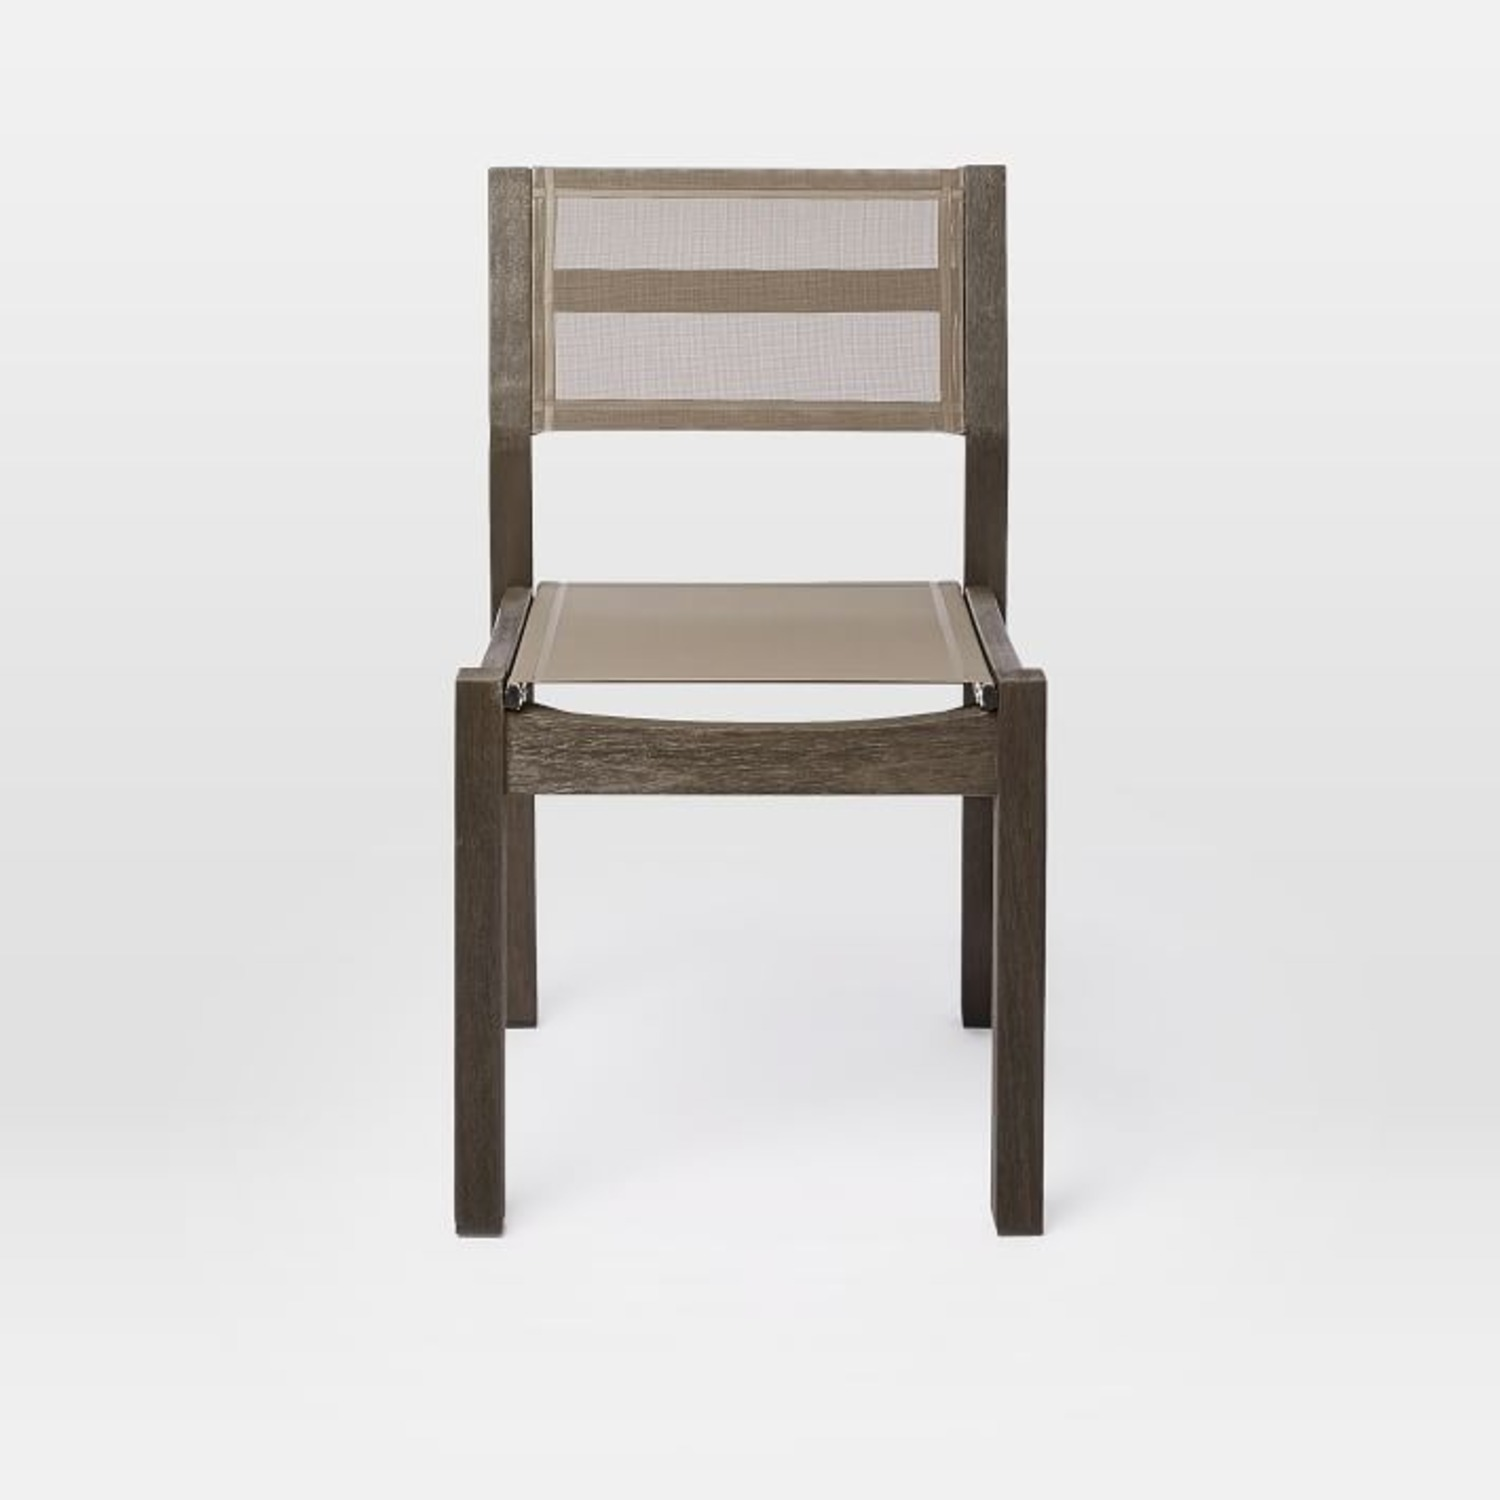 West Elm Portside Textiline Chair, Weathered Cafe - image-1